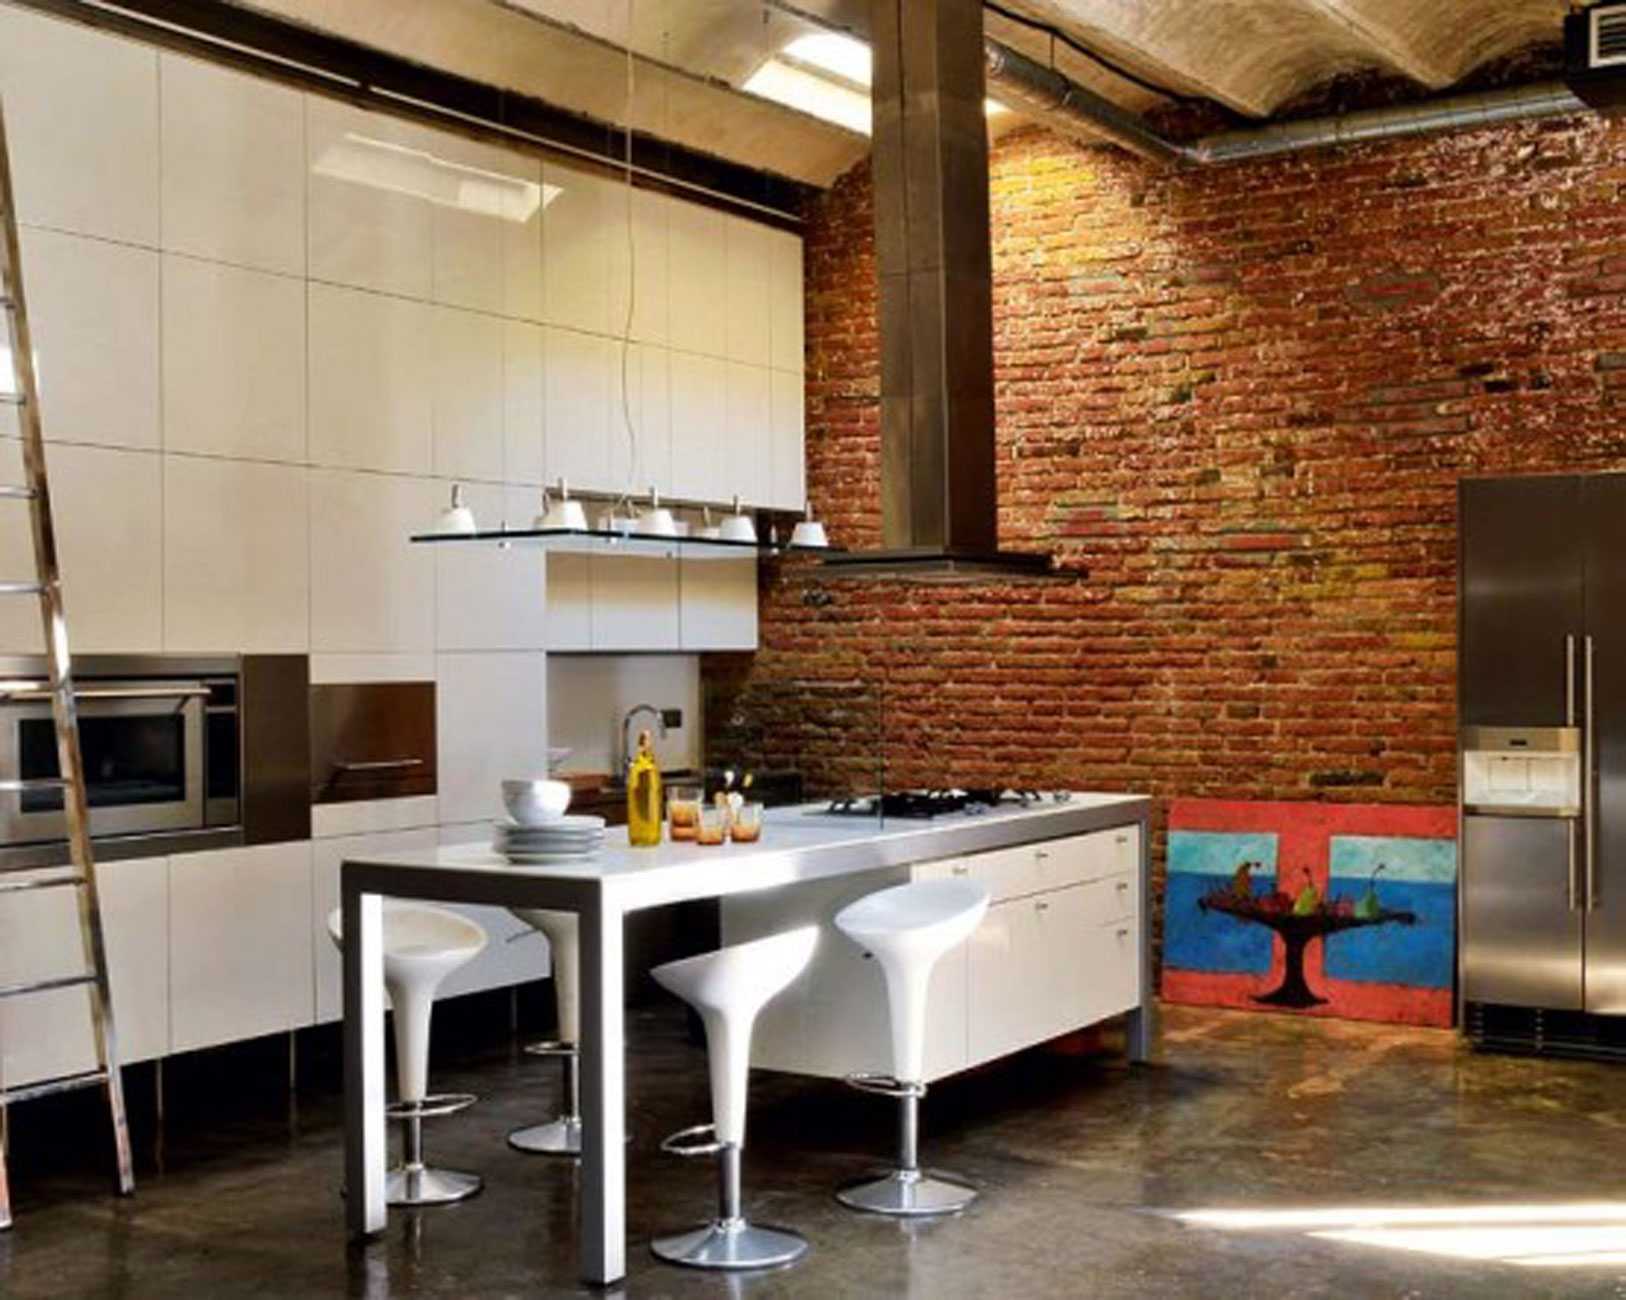 Affordable Modern Loft With Industrial Bricks Element For Apartment Ideas  Dining Room With Flat Ideas Interior